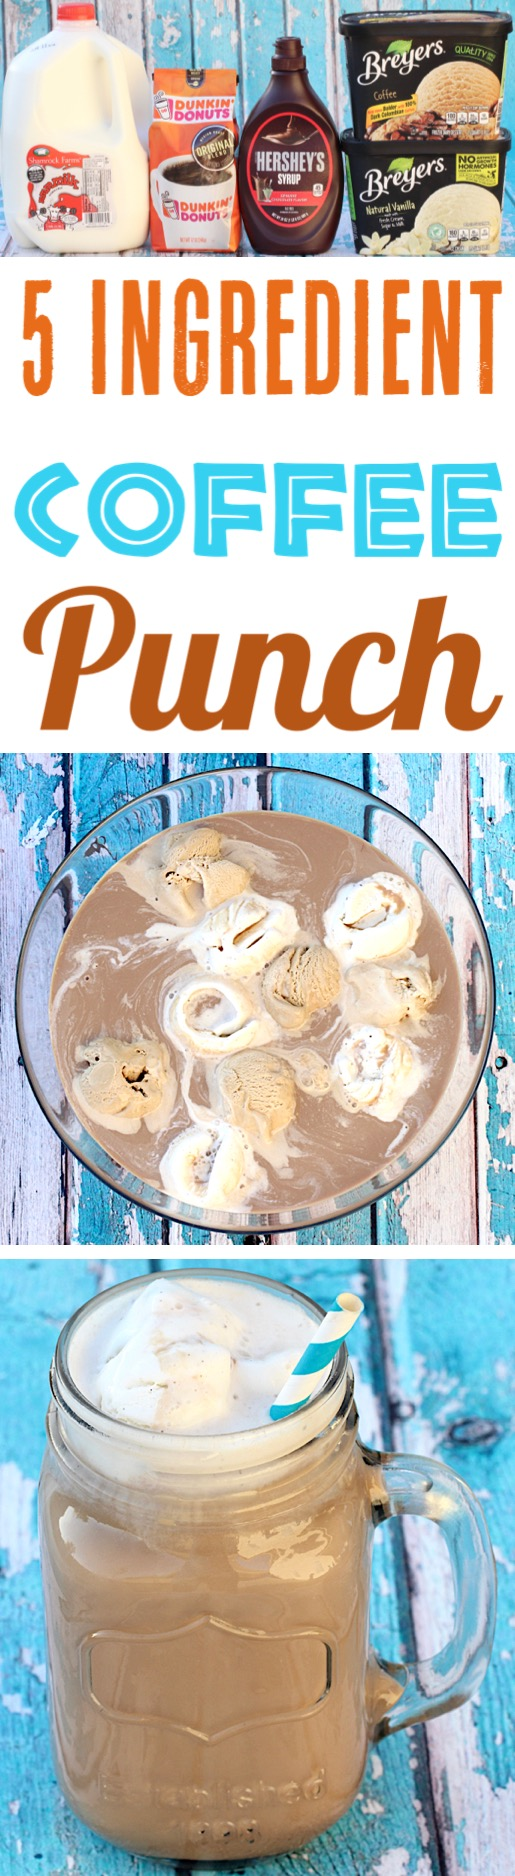 Coffee Punch with Ice Cream Easy Recipes